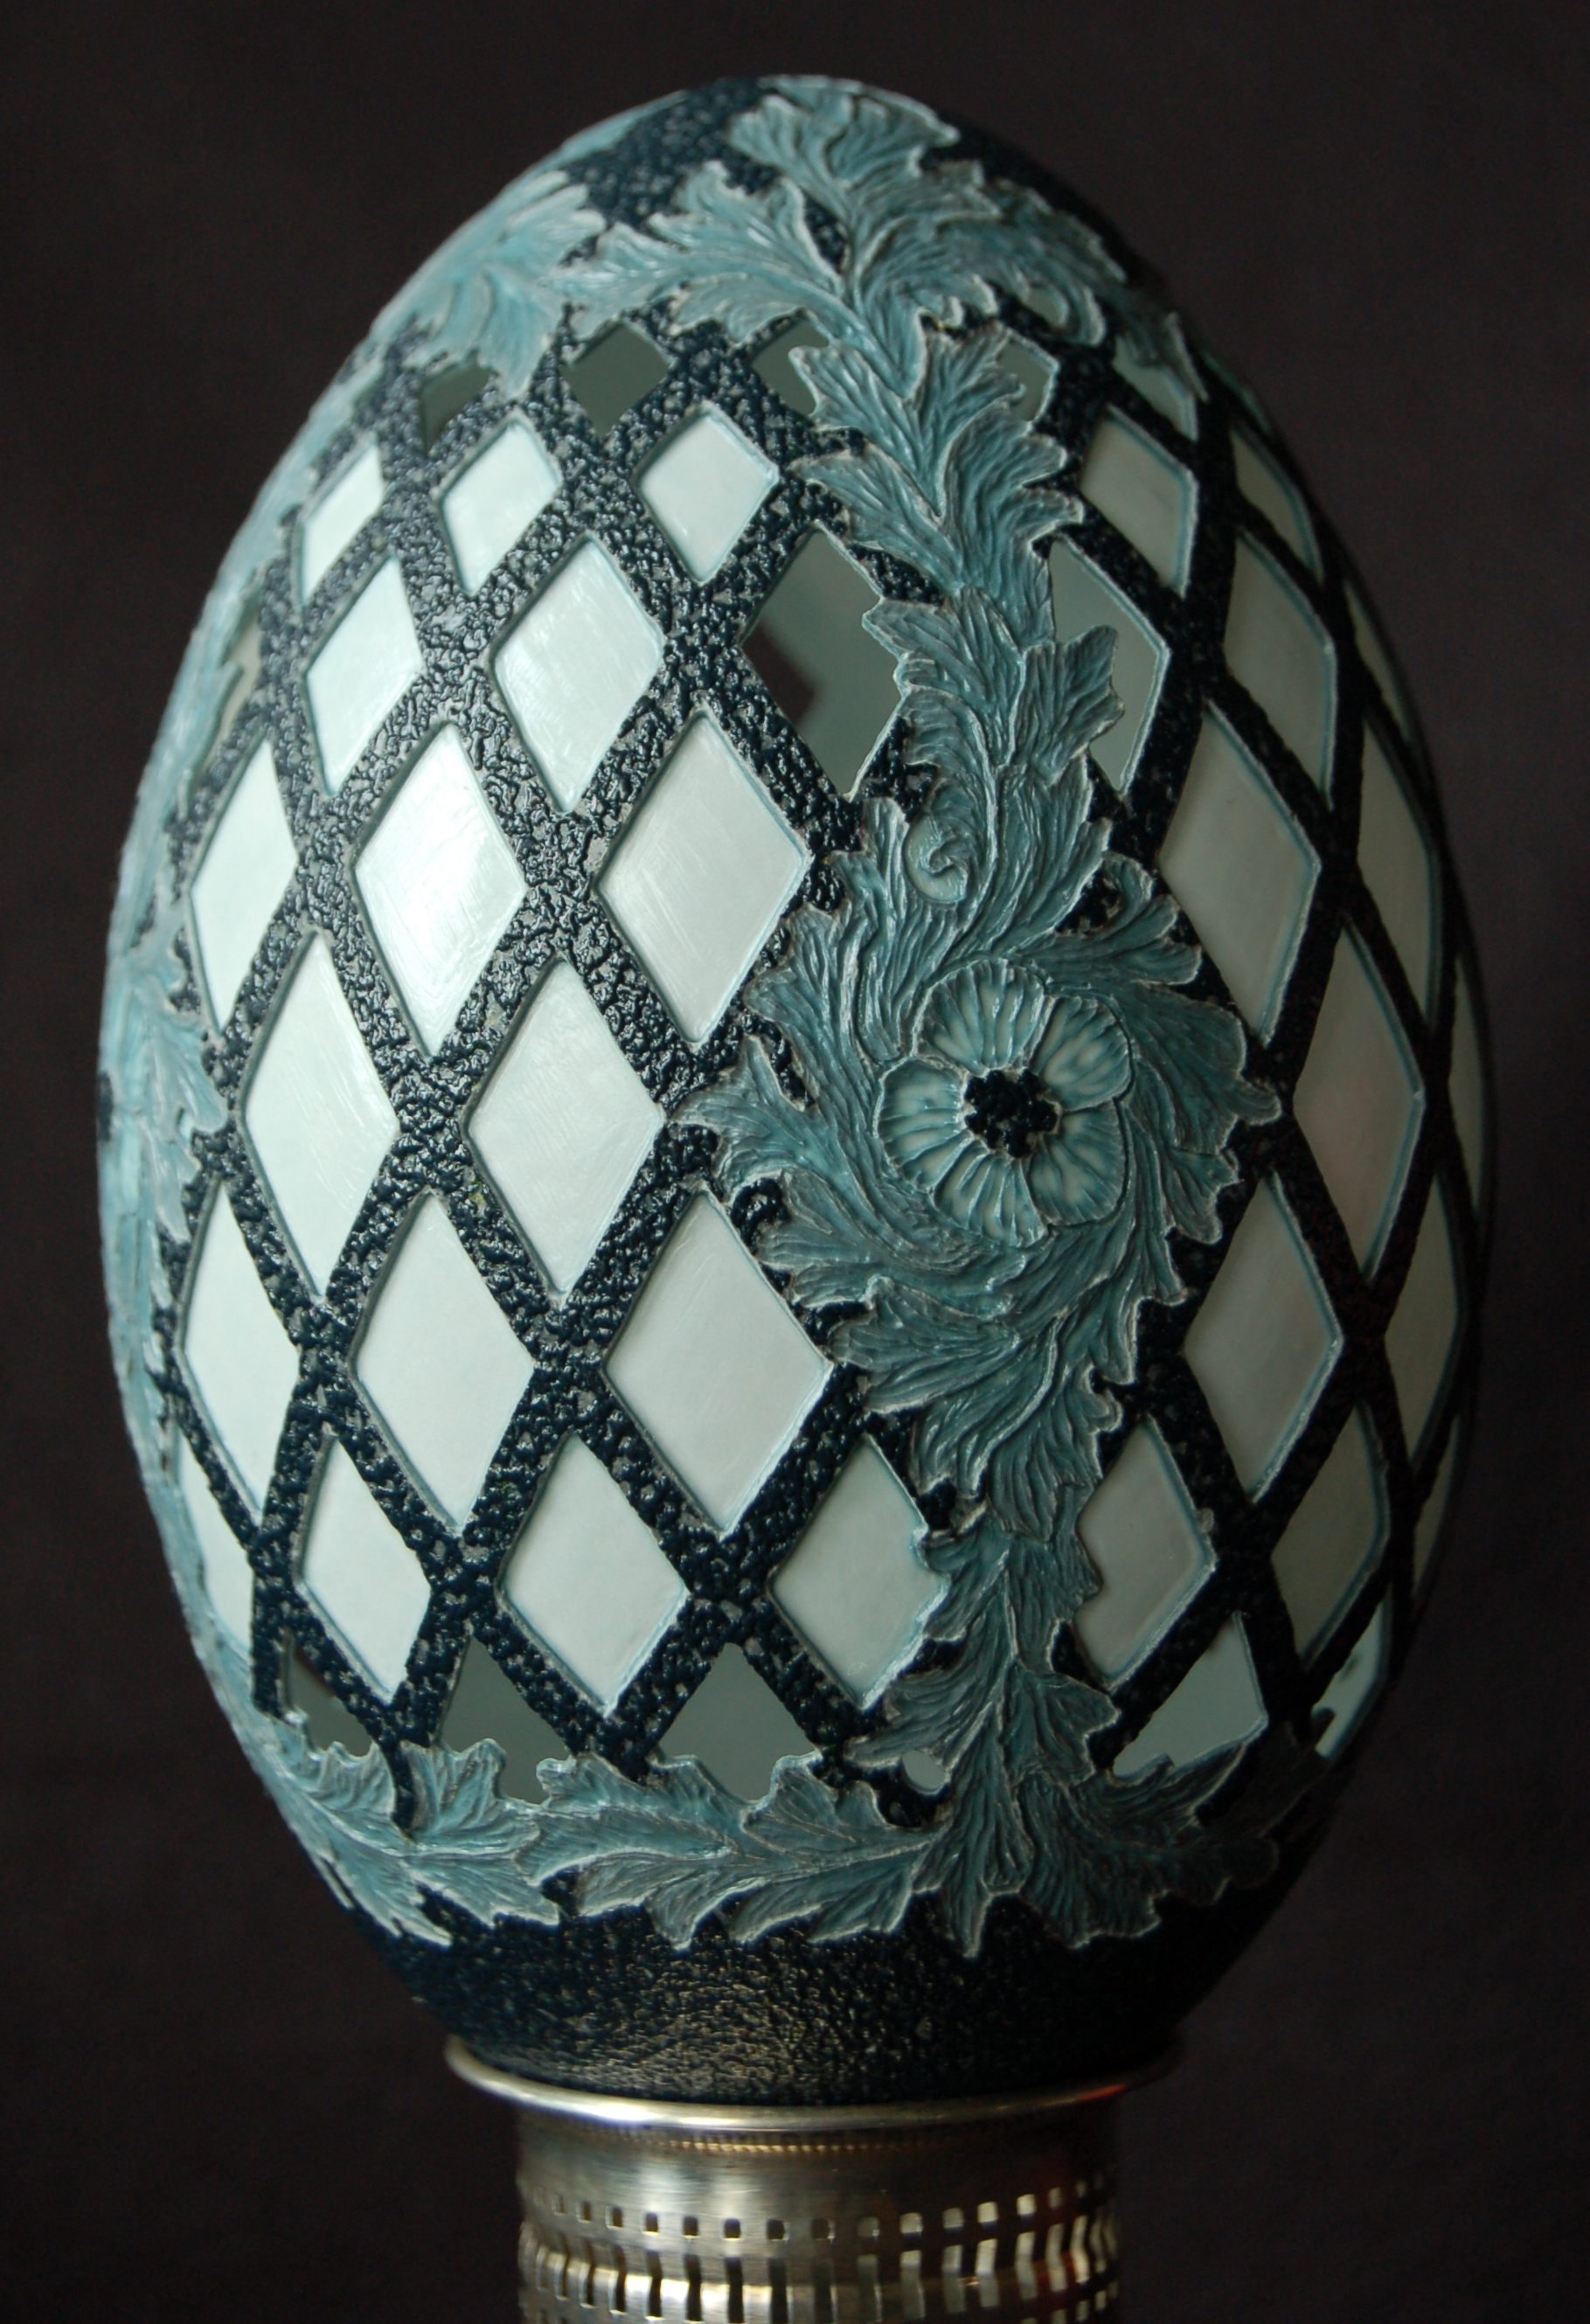 Carving a lattice and acanthus pattern on an emu egg shell